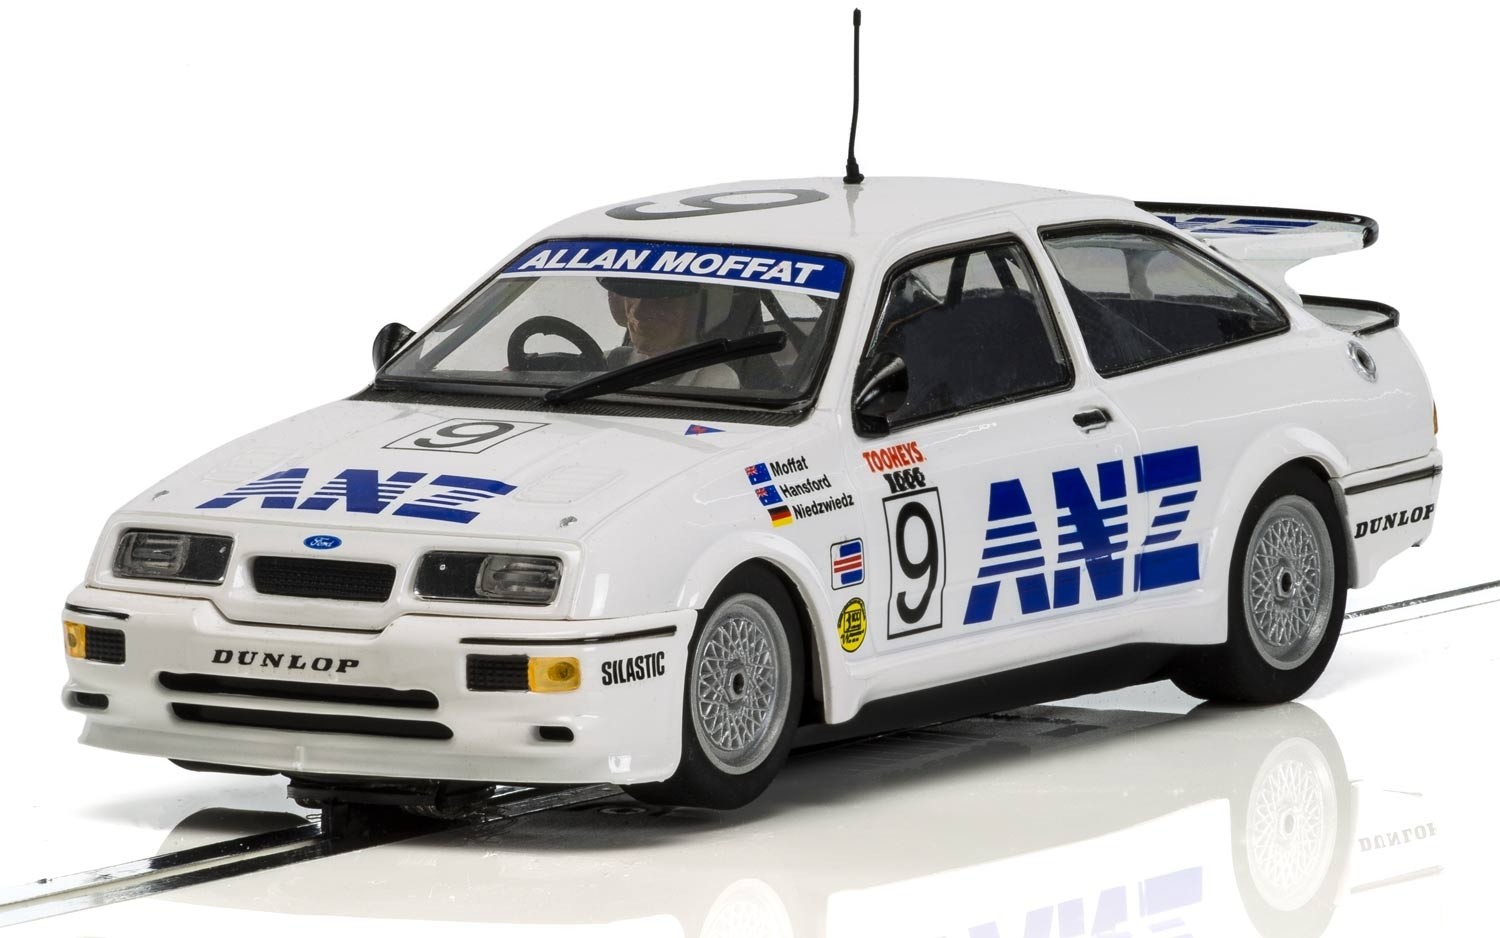 Ford Sierra Cosworth RS500 - James Hardie 1000 Bathurst 1988 1/32 Slot Car